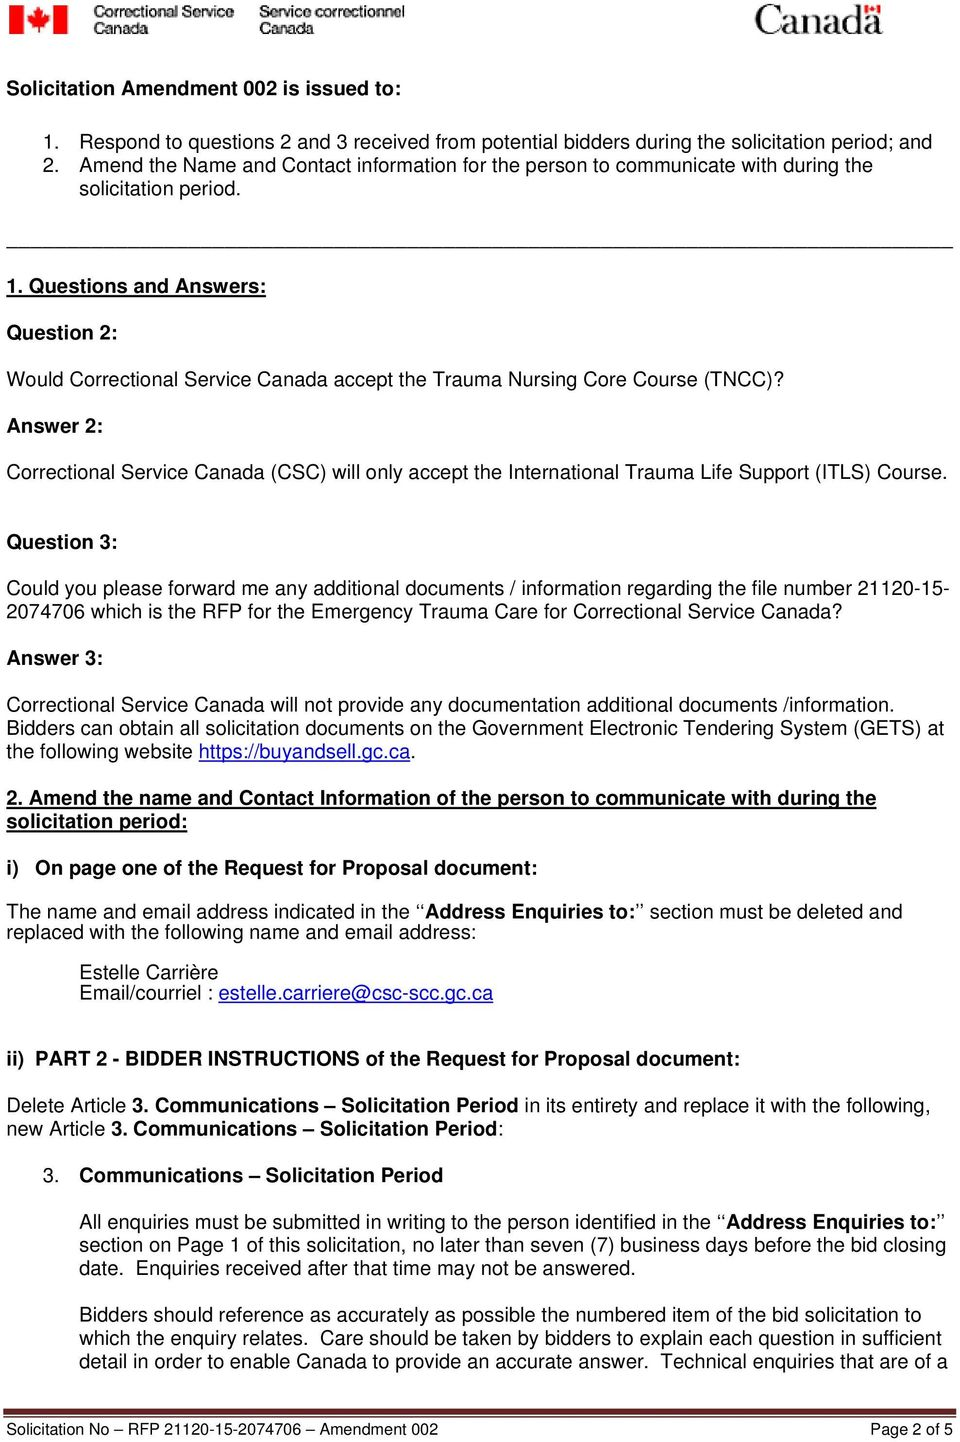 Questions and Answers: Question 2: Would Correctional Service Canada accept the Trauma Nursing Core Course (TNCC)?